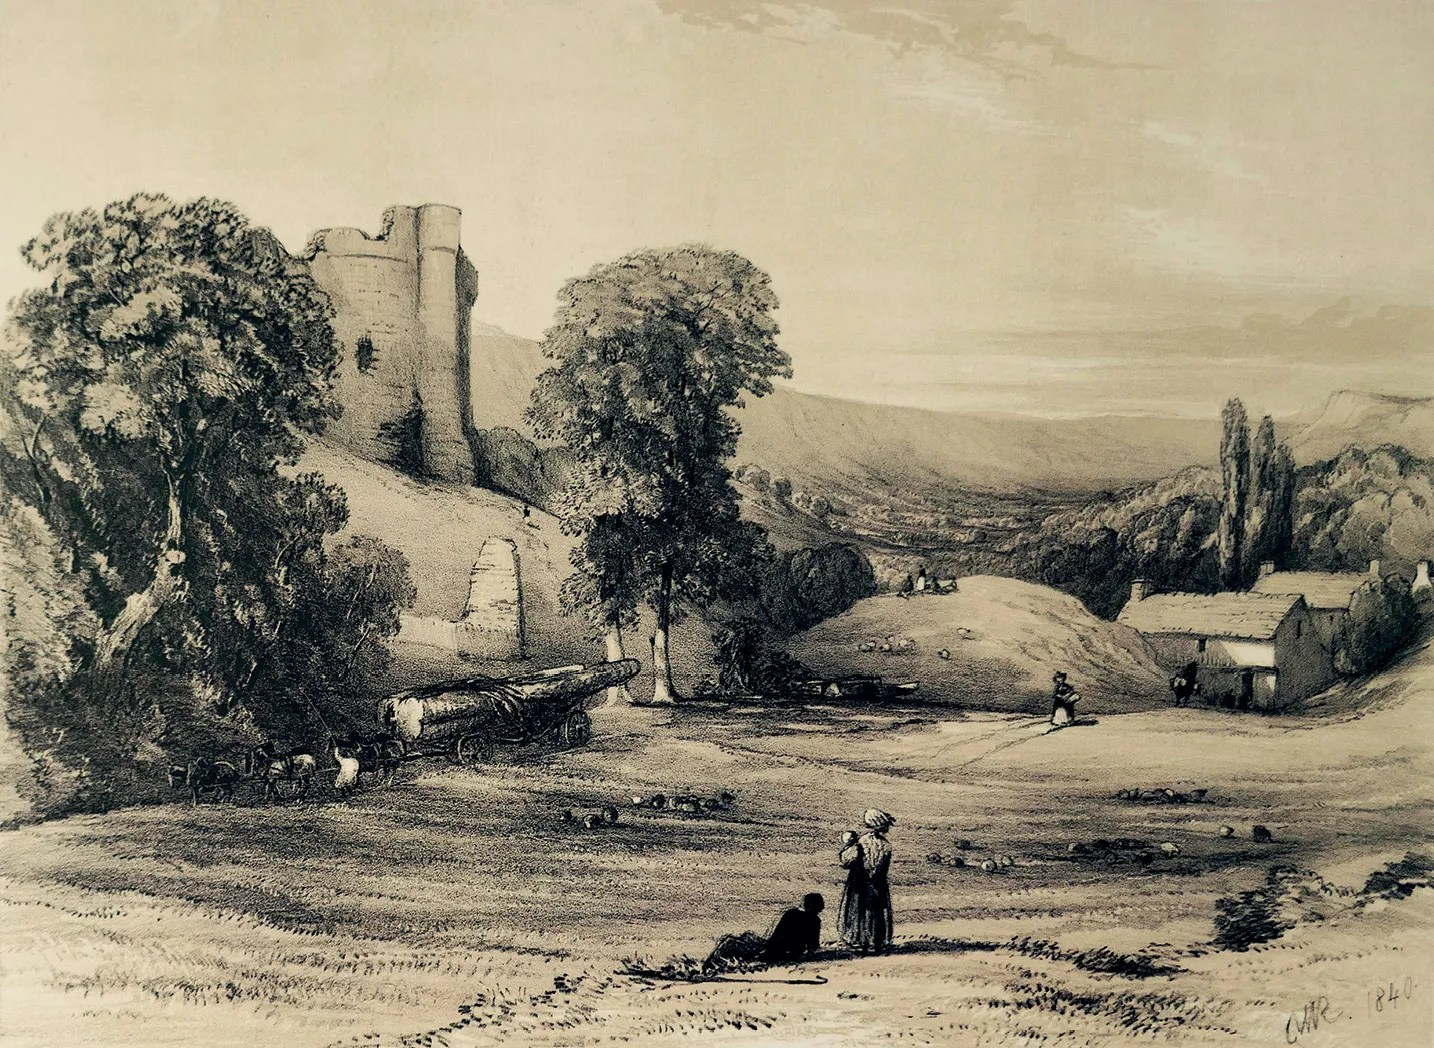 left This Romantic view of Longtown Castle by Charles Walter Radclyffe, published in Picturesque Antiquities &c. of the County of Hereford (1840), shows sheep grazing on Castle Green and a timber wagon passing by, pulled by a team of six horses. The Skirrid appears on the far right-hand side, and Offa's Dyke runs along the top of the high ridge across the background of the picture.